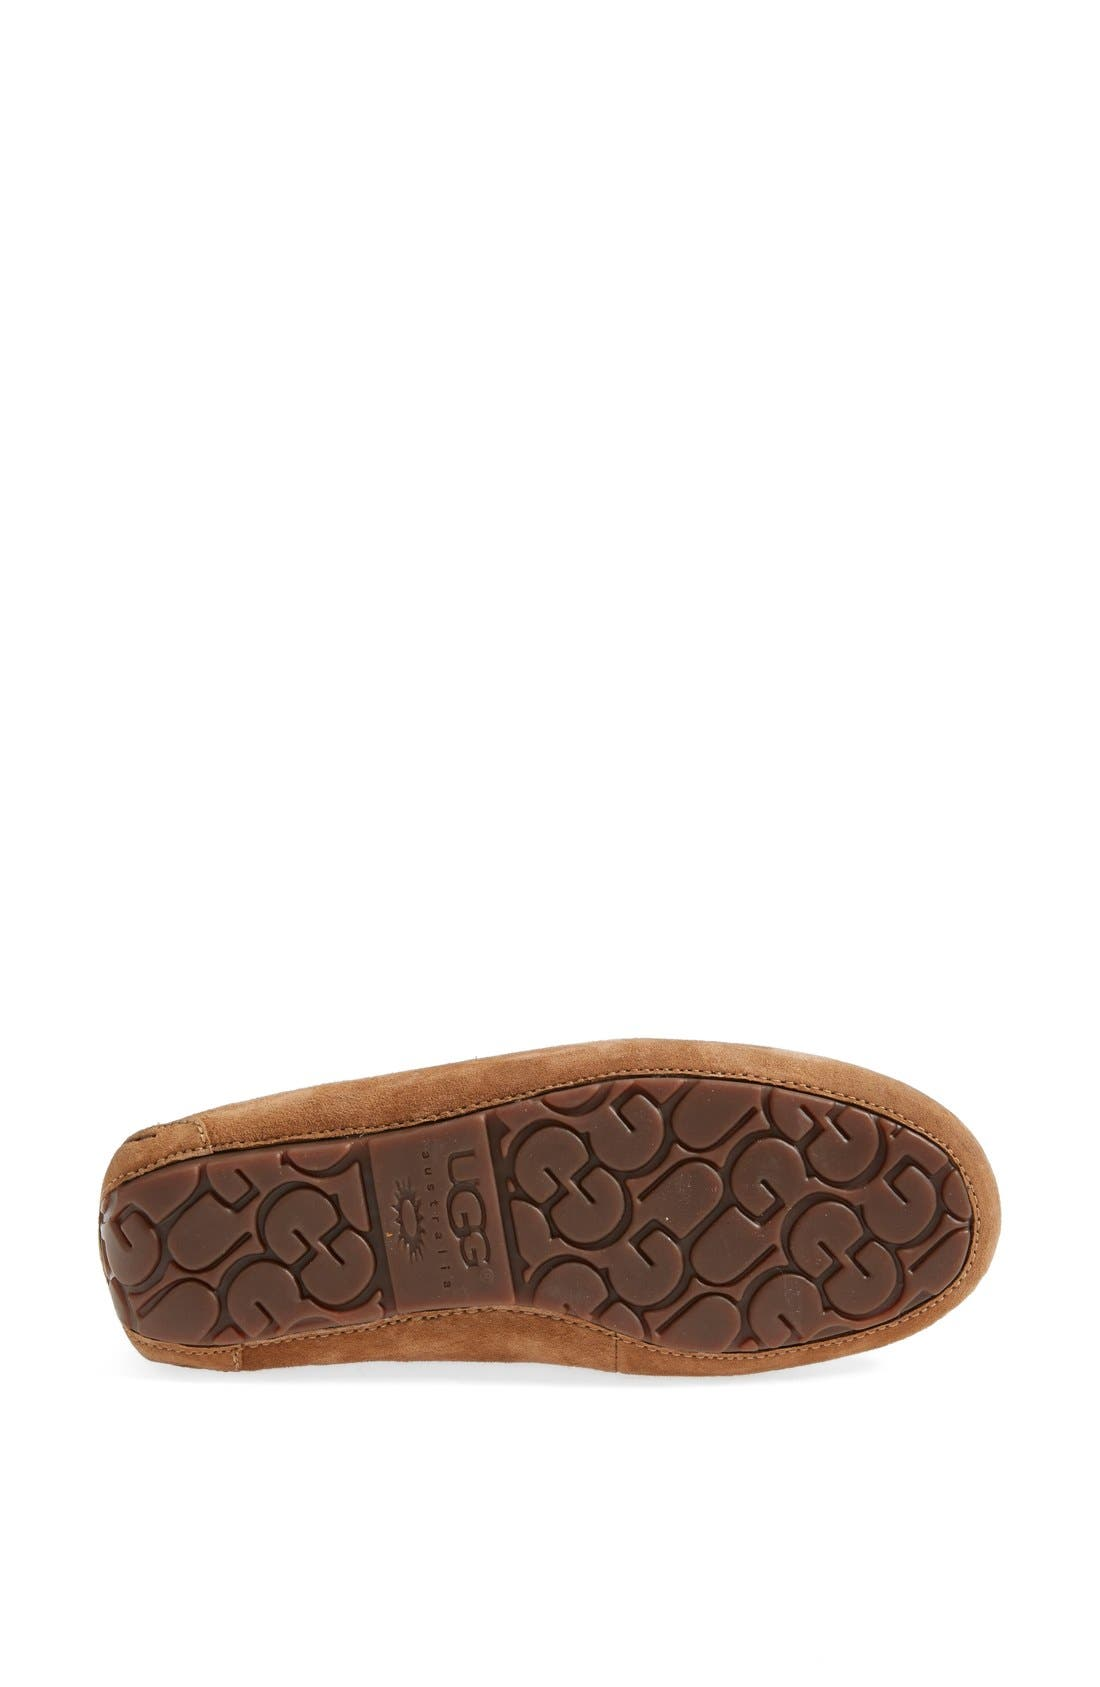 Brett Slipper,                             Alternate thumbnail 4, color,                             Chestnut/ Chocolate